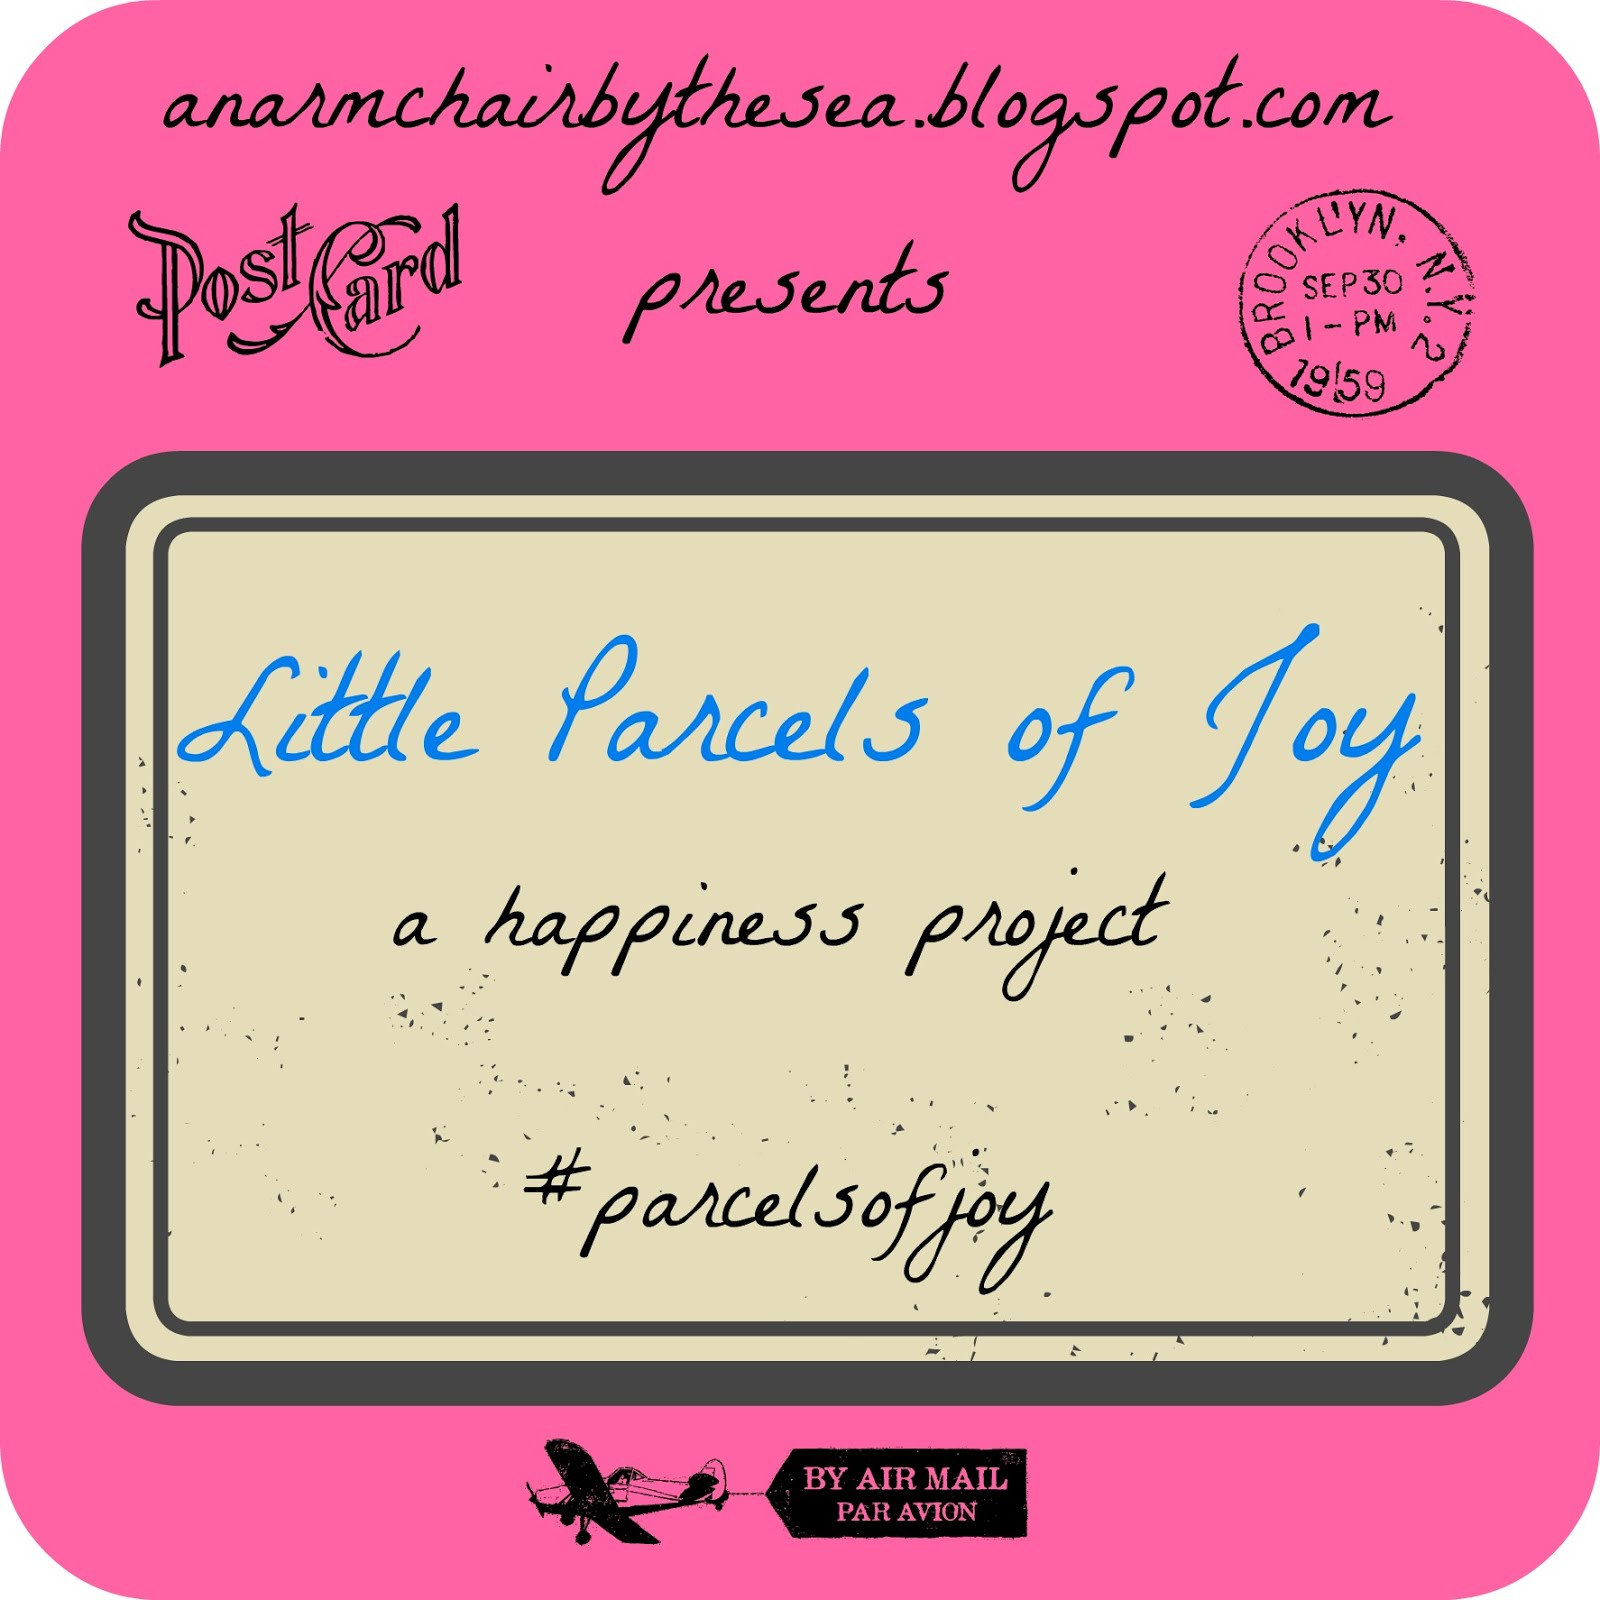 Little Parcels of Joy: A Happiness Project